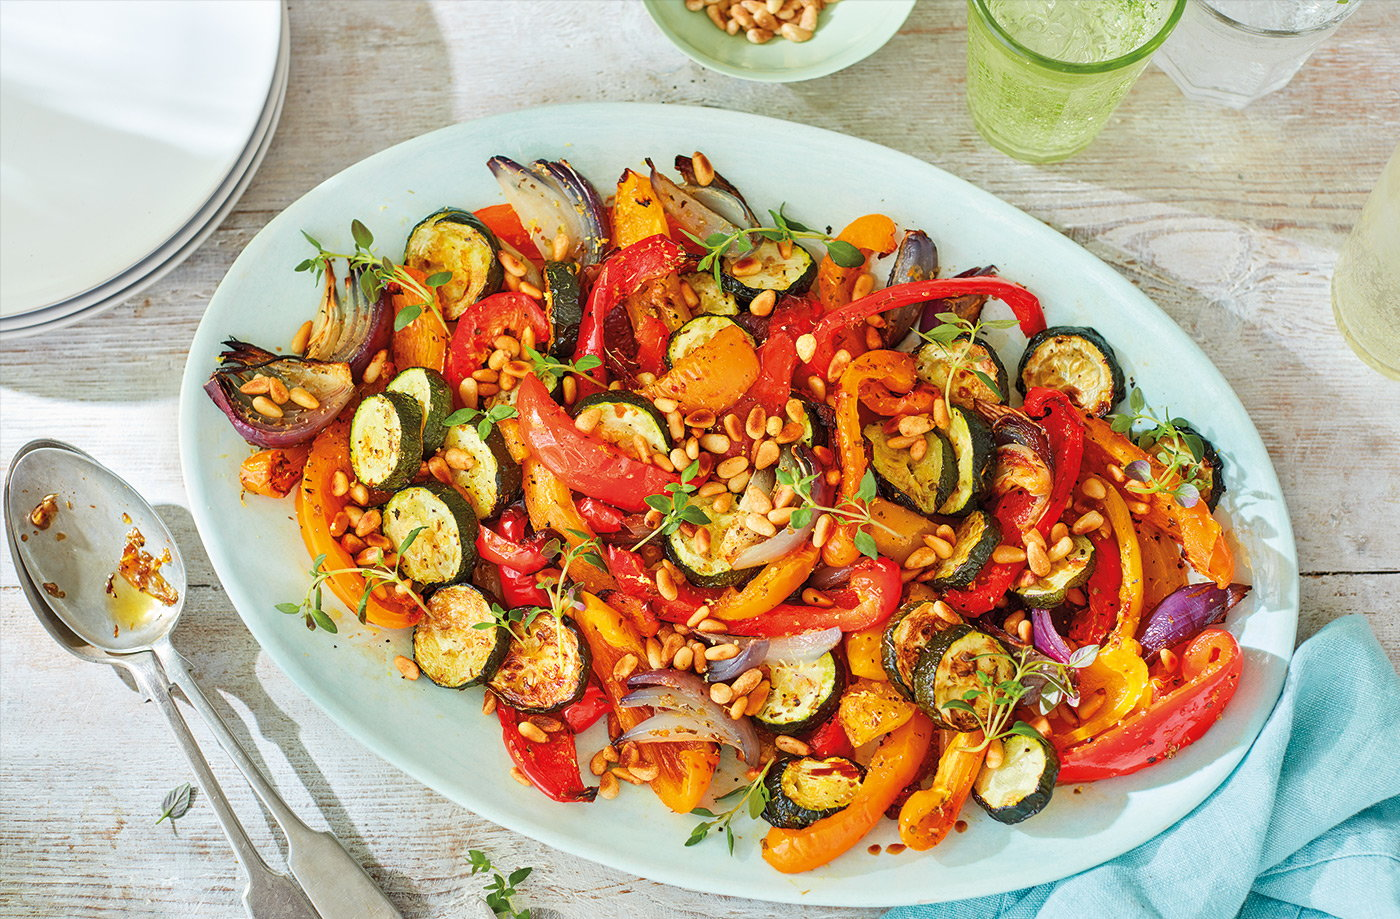 Roasted pepper and courgette salad recipe